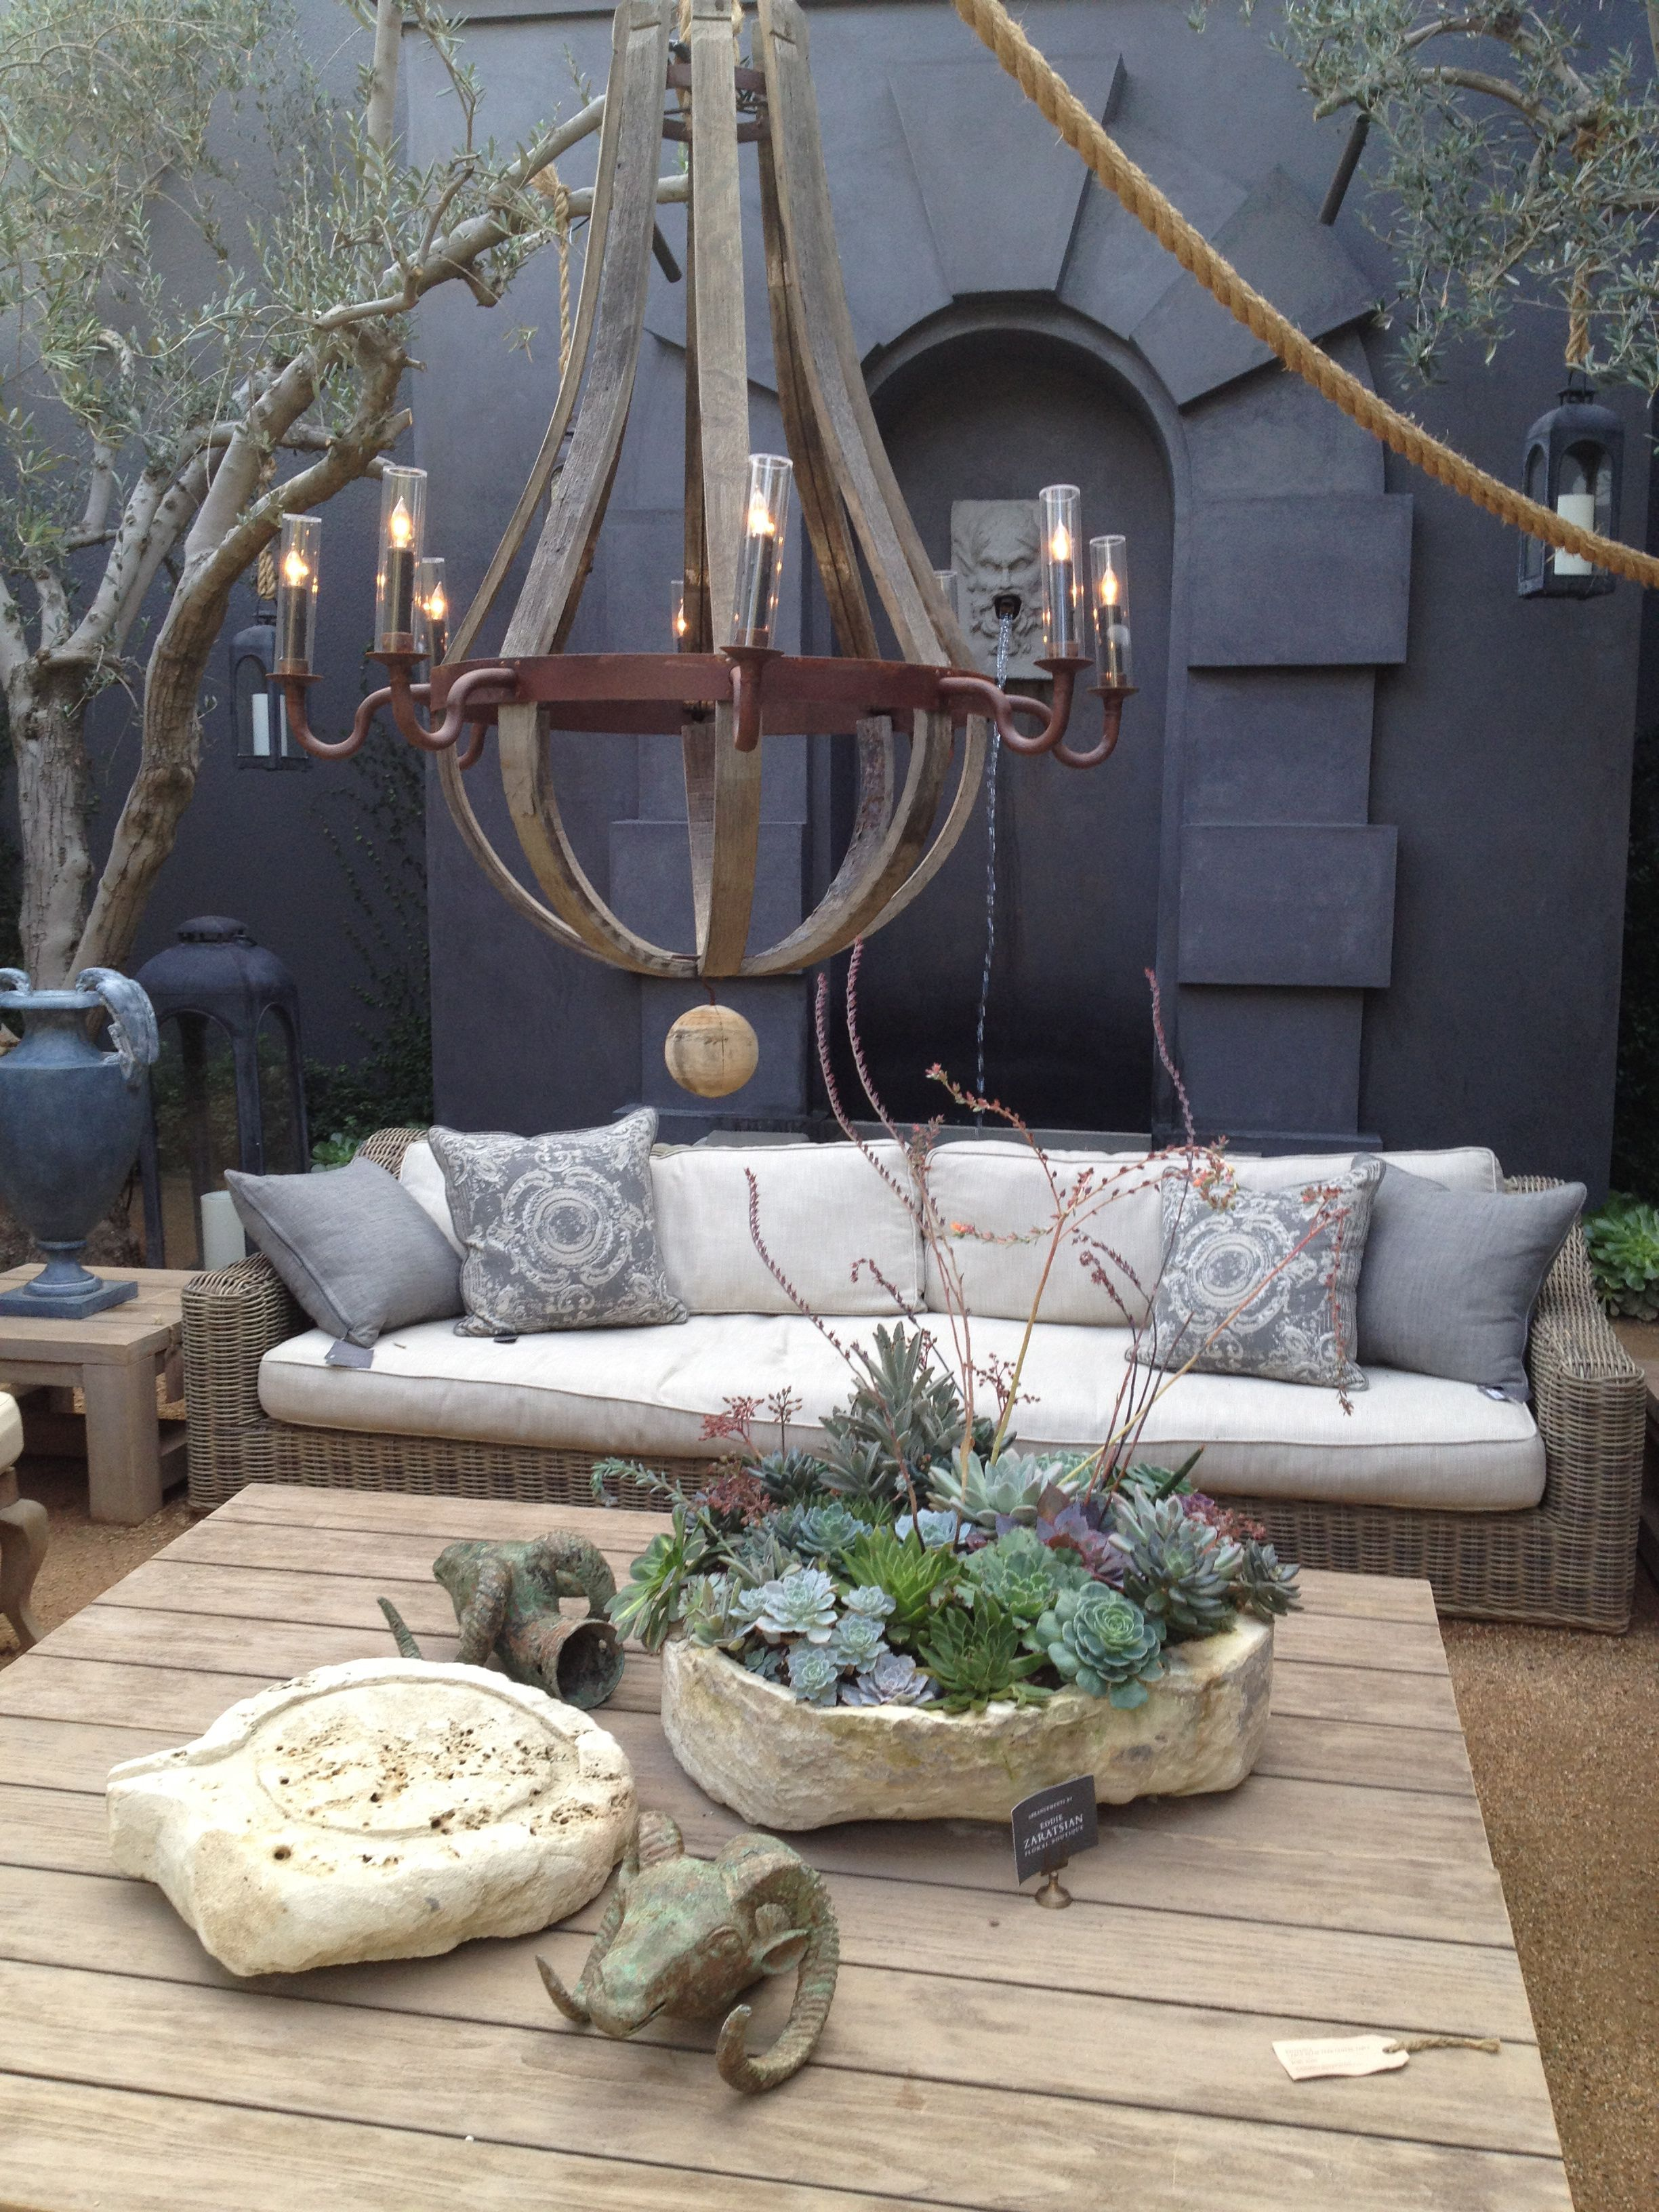 SIMPLE CHIC | Outdoor Living | Outdoor living, Outdoor, Outdoor spaces